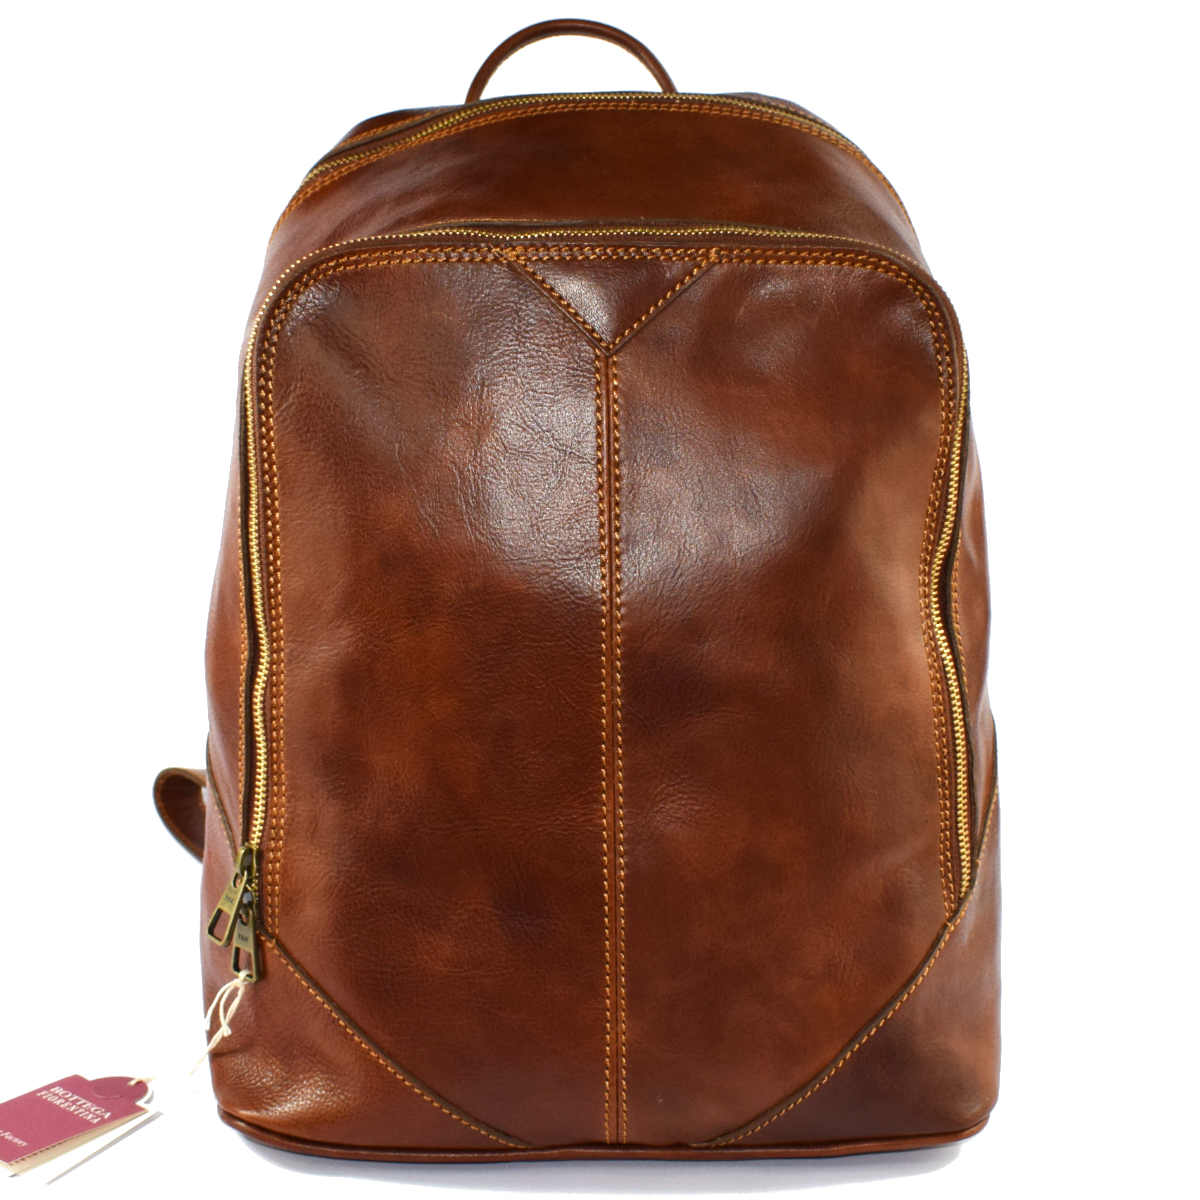 24428 BACKPACK FOR PC by Bottega Fiorentina